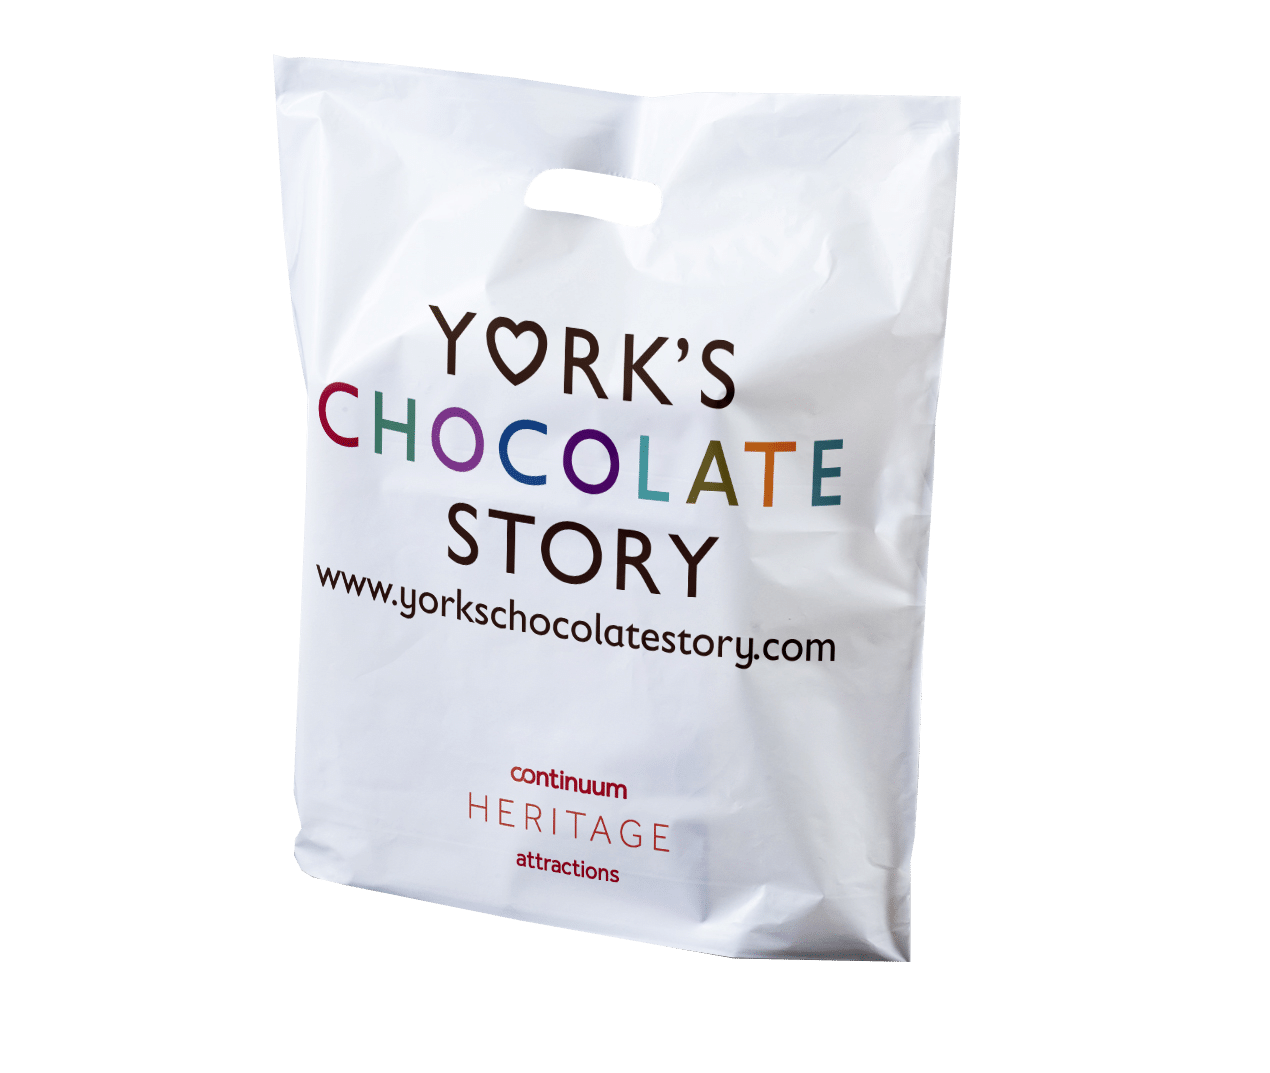 YorkChocolate_PatchHandle